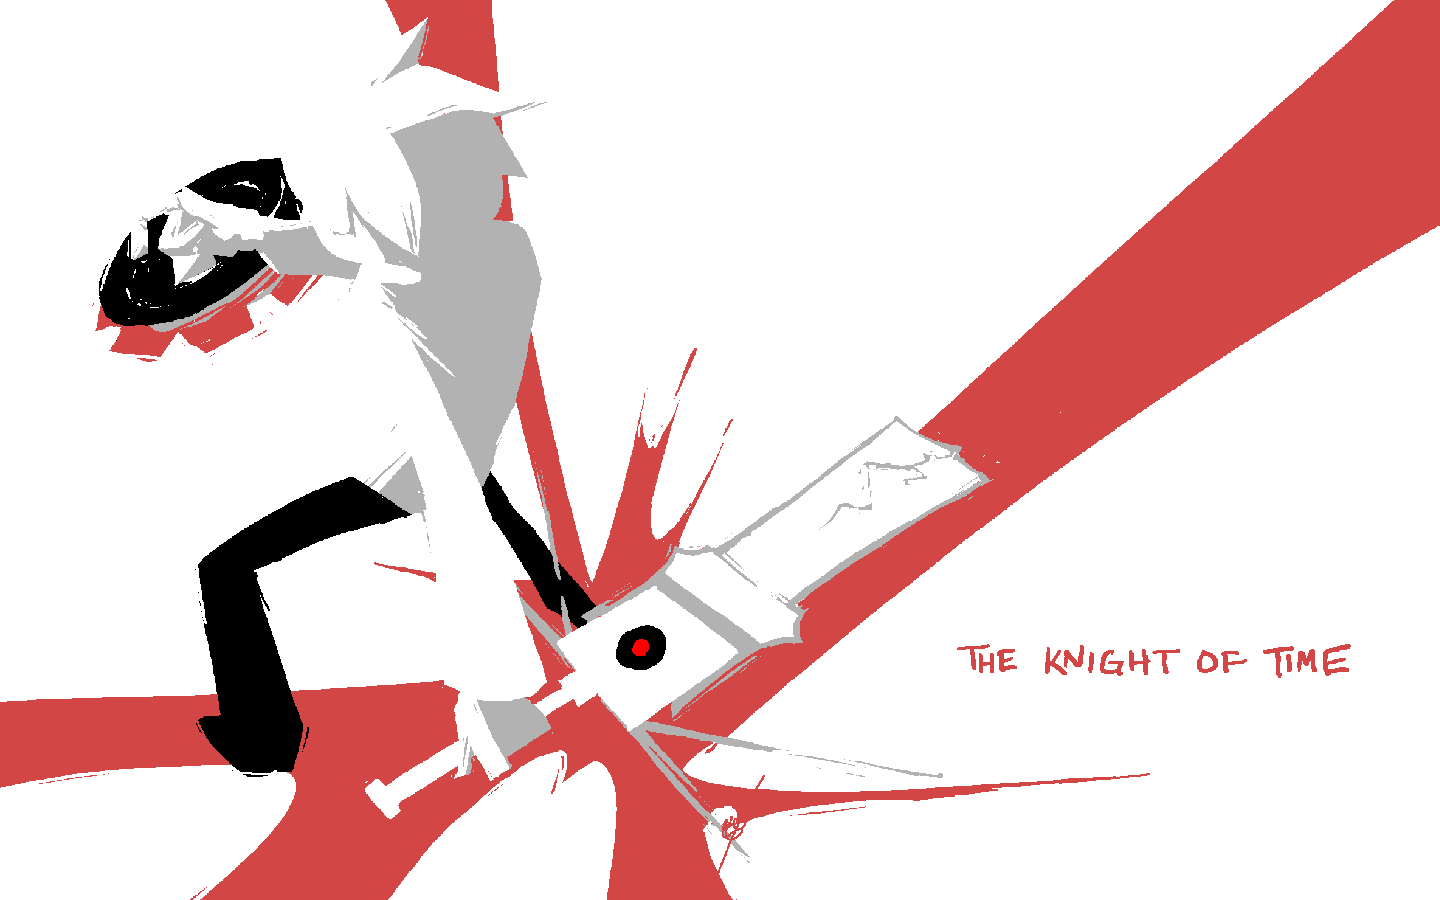 time City knight paint HD Wallpaper